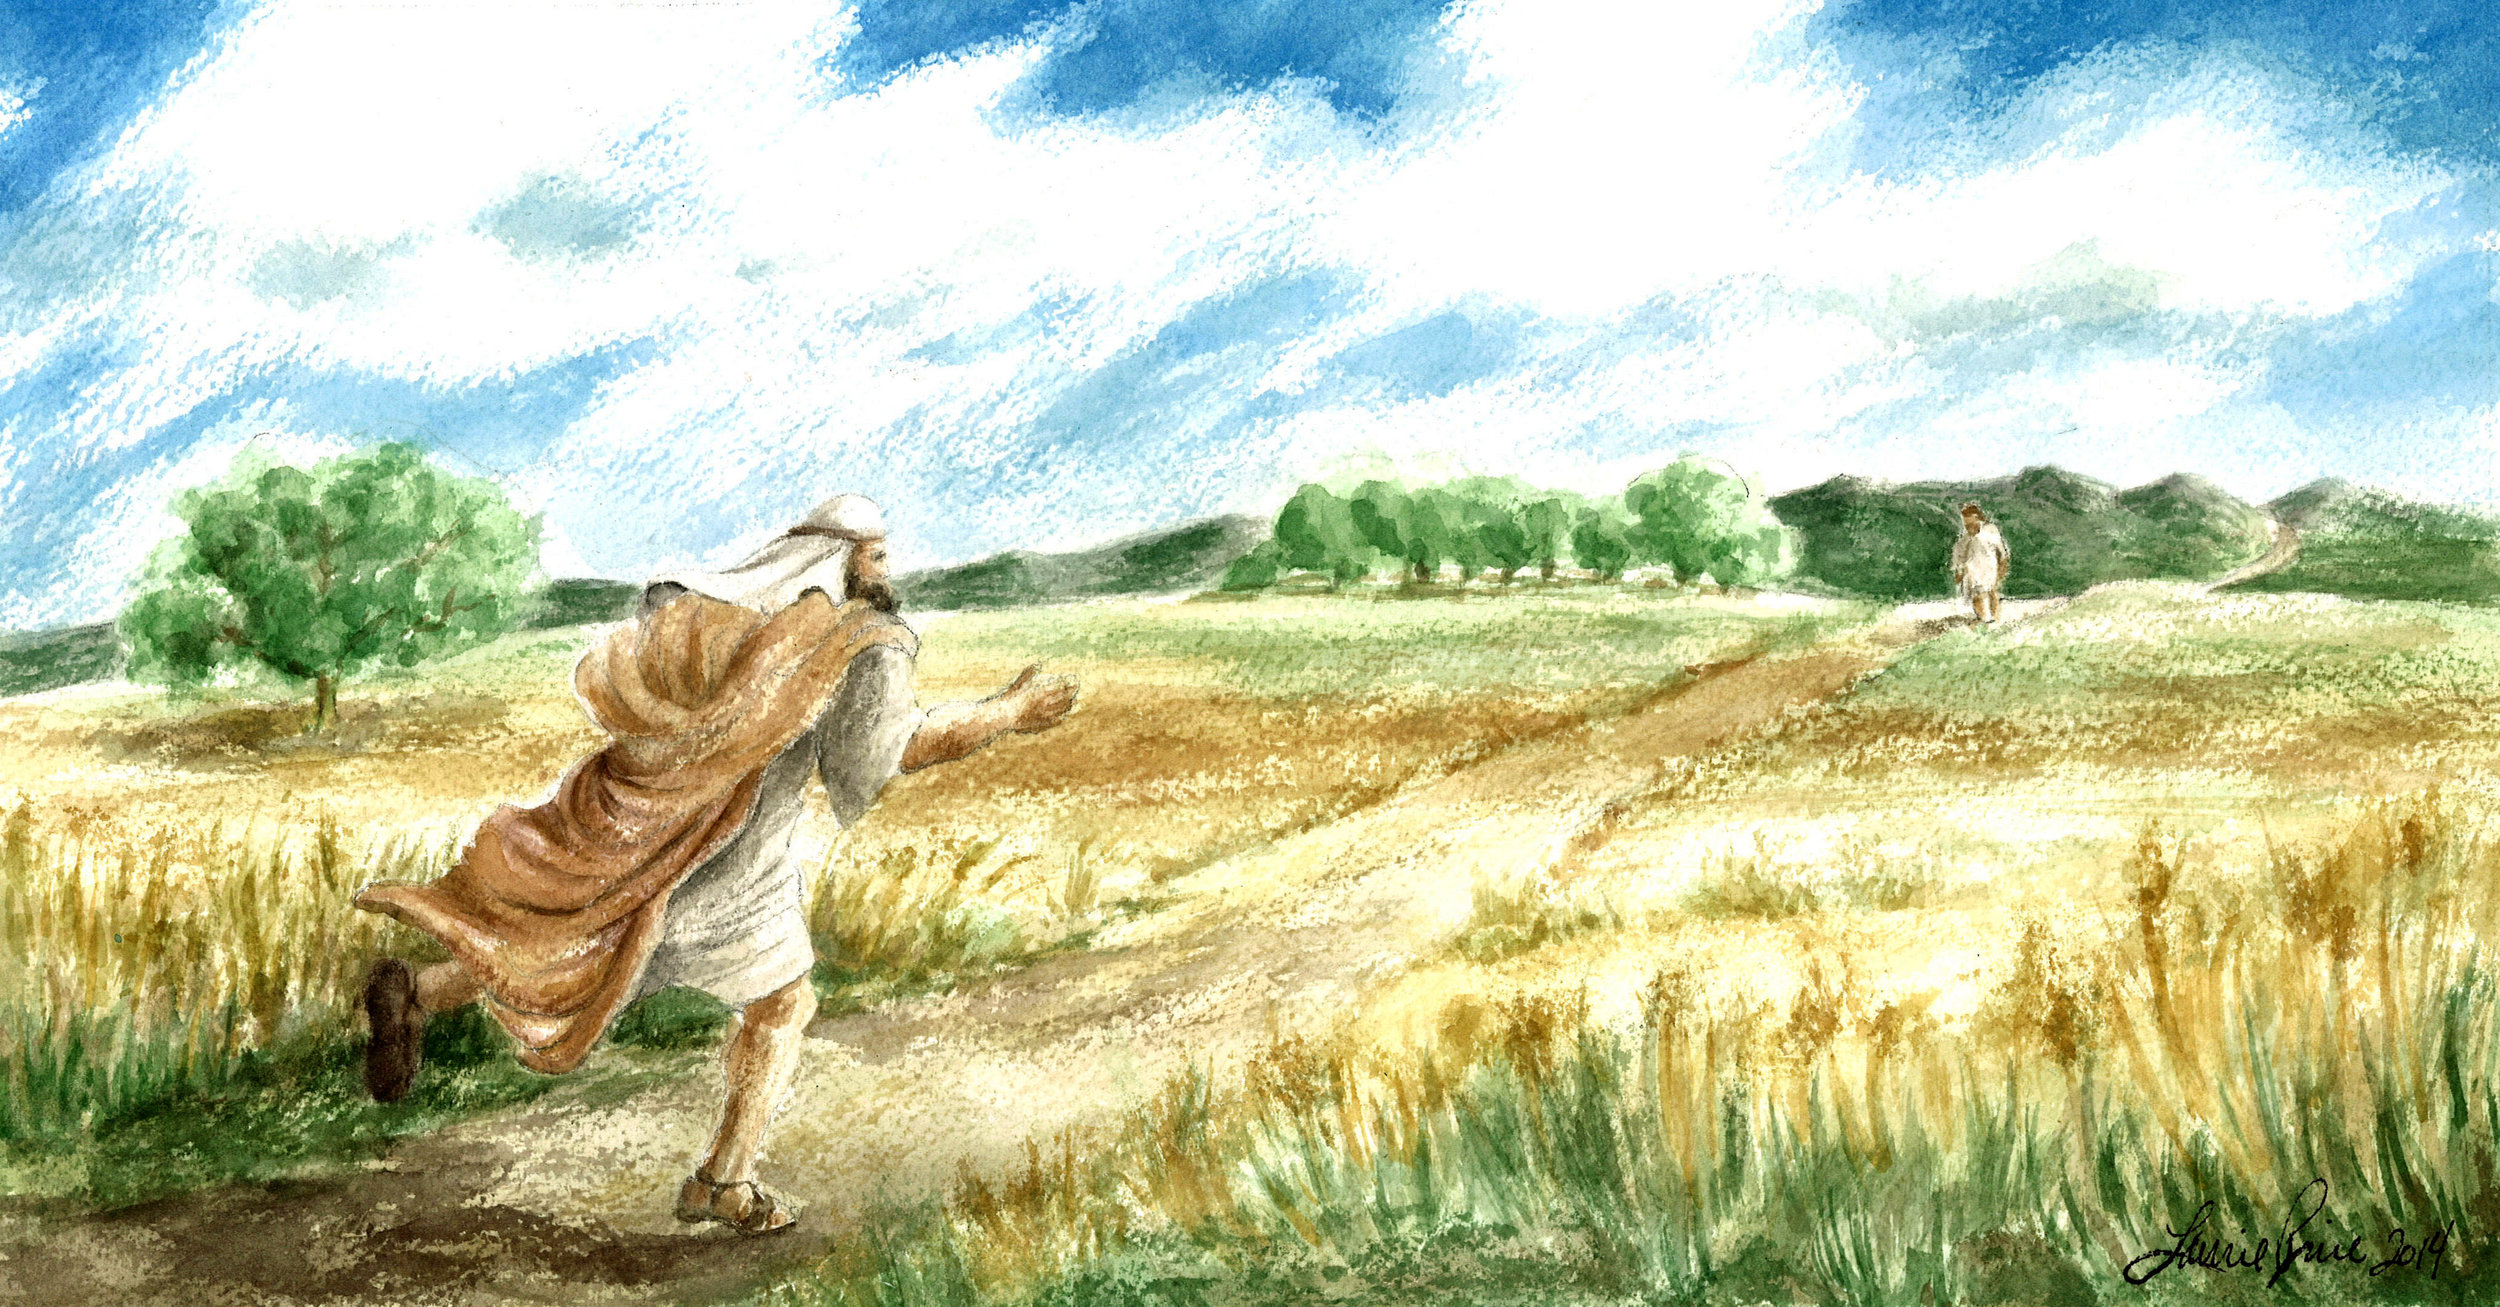 THE PRODIGAL'S FATHER RUNS TO HIS SON (COMMISSION)